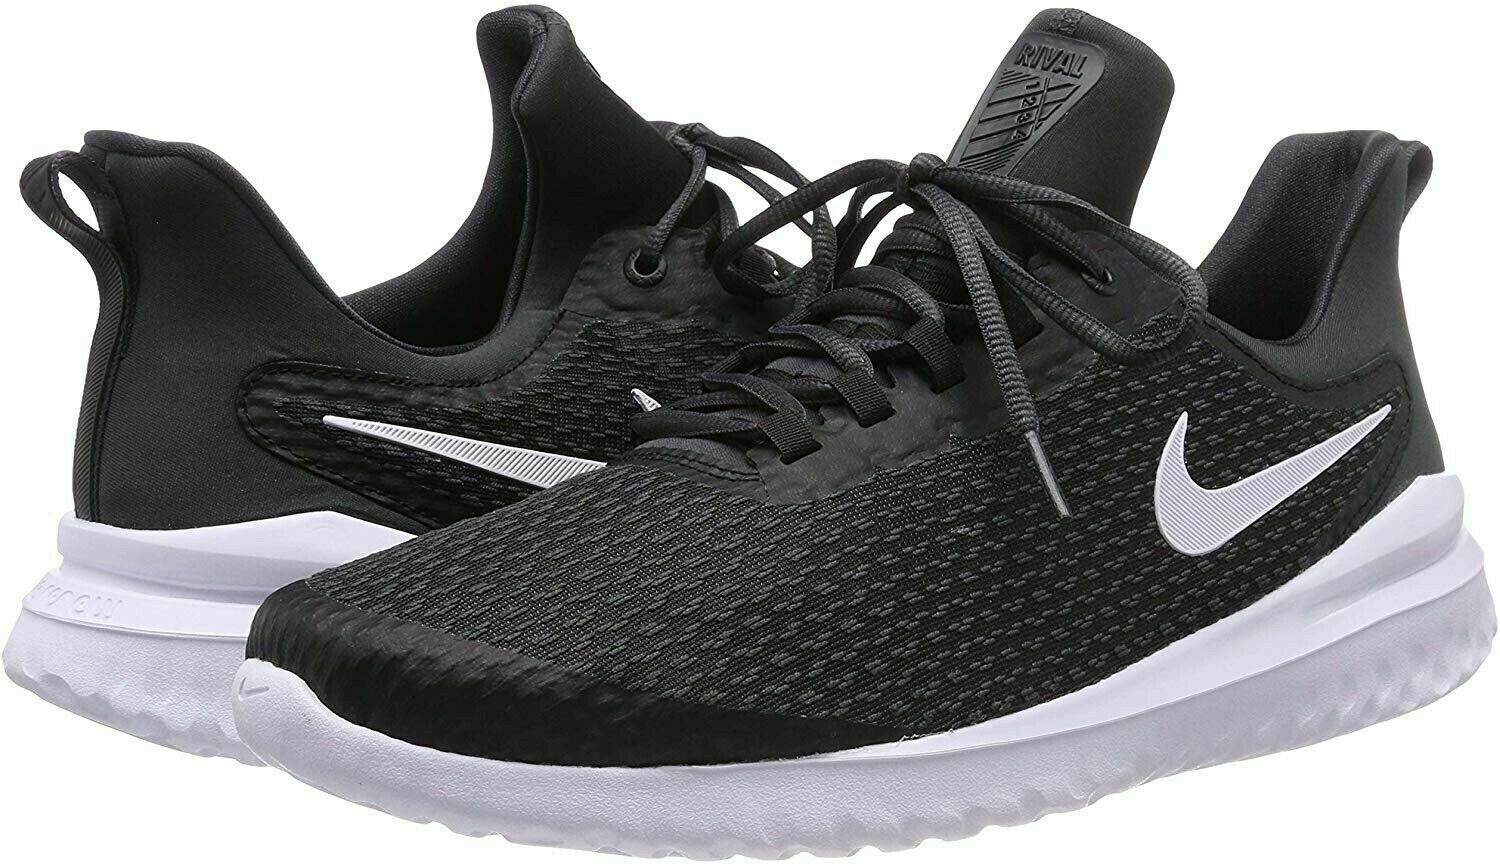 NIKE RENEW RIVAL BLACK WHITE (AA7400 001) Size 12.5 Men's New